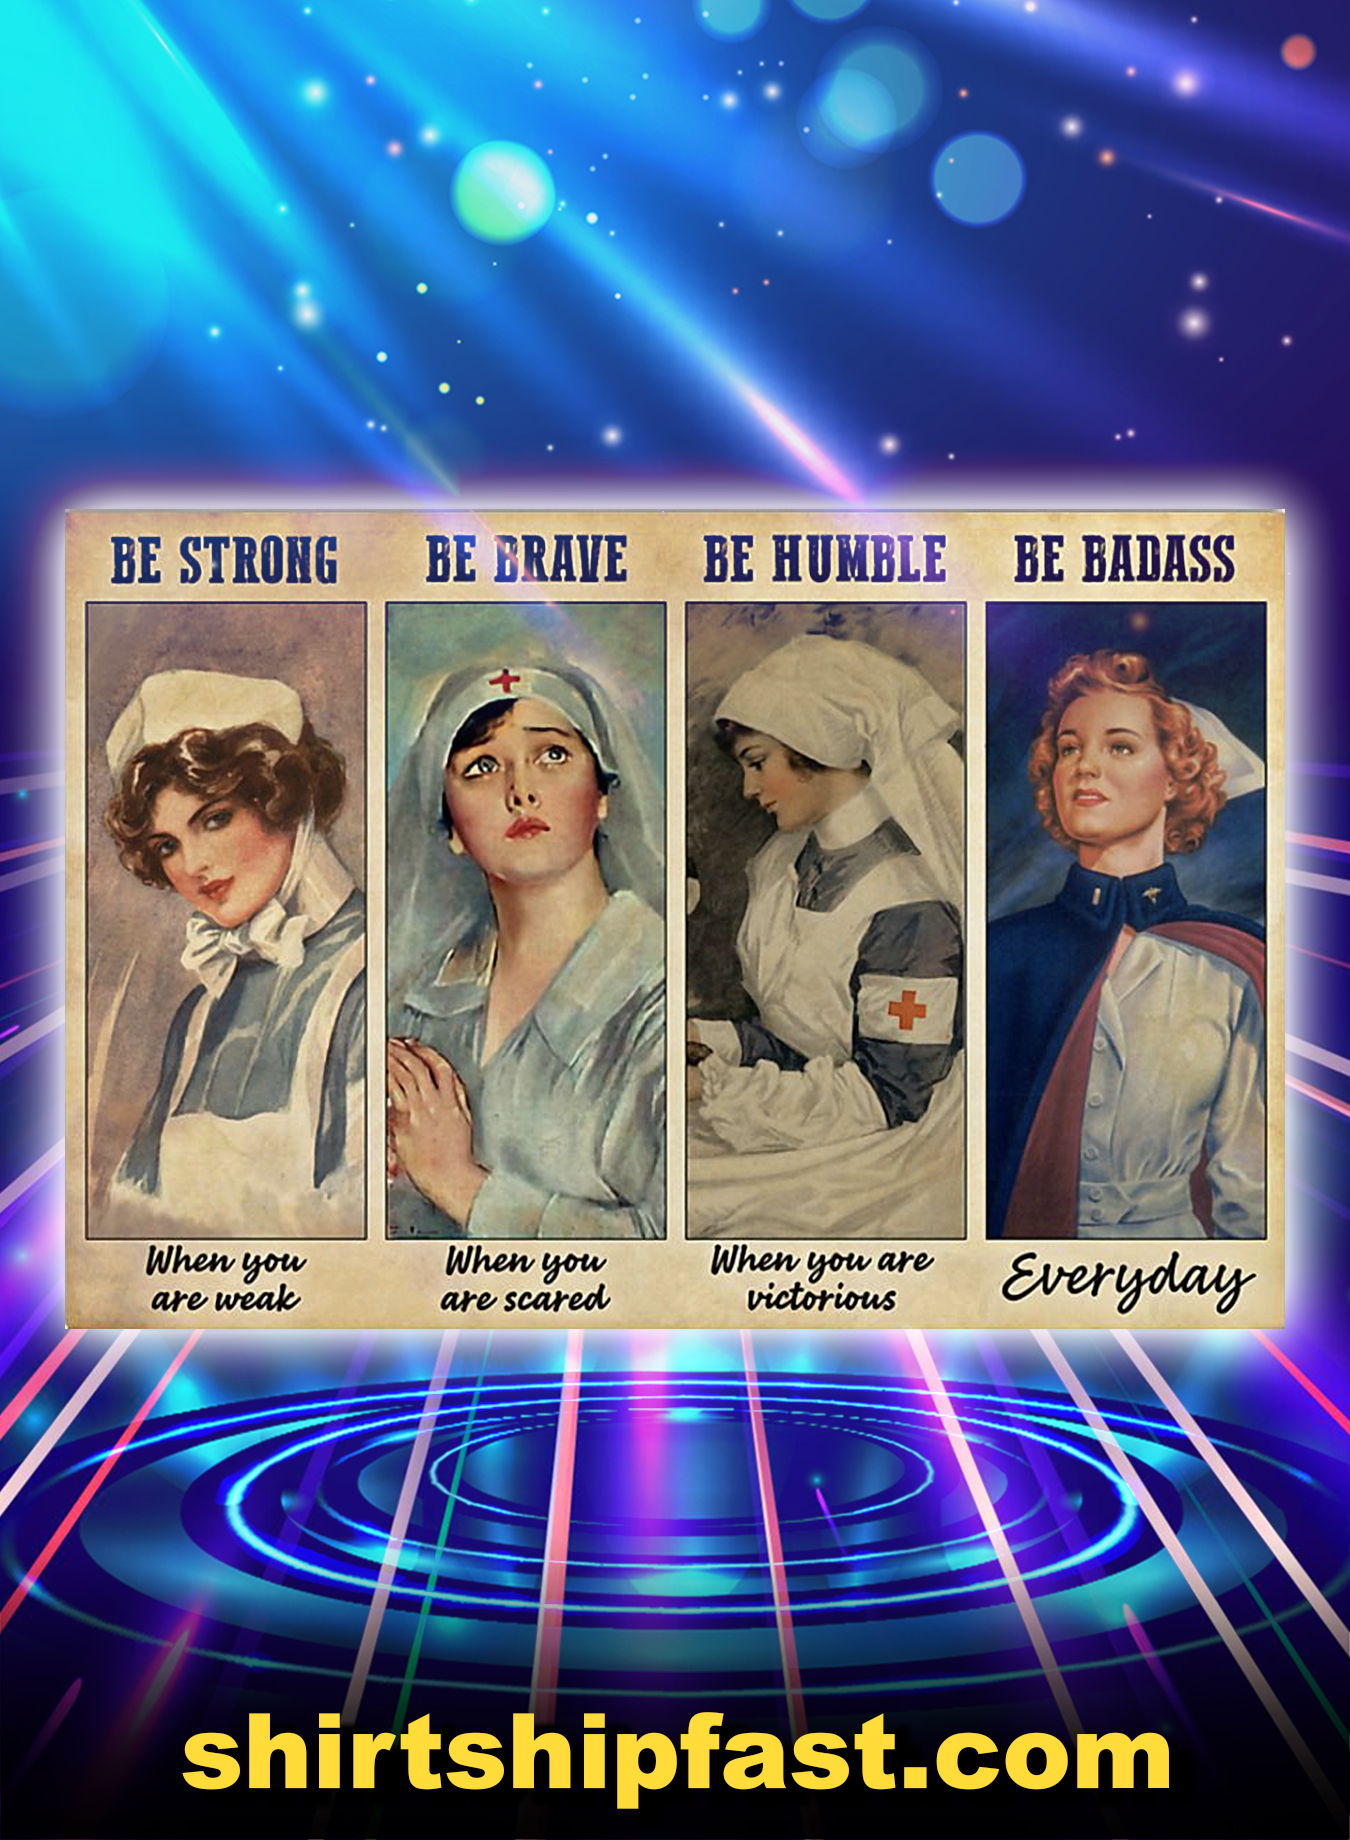 OFFICIAL NURSES BE STRONG BE BRAVE BE HUMBLE BE BADASS POSTER - A2